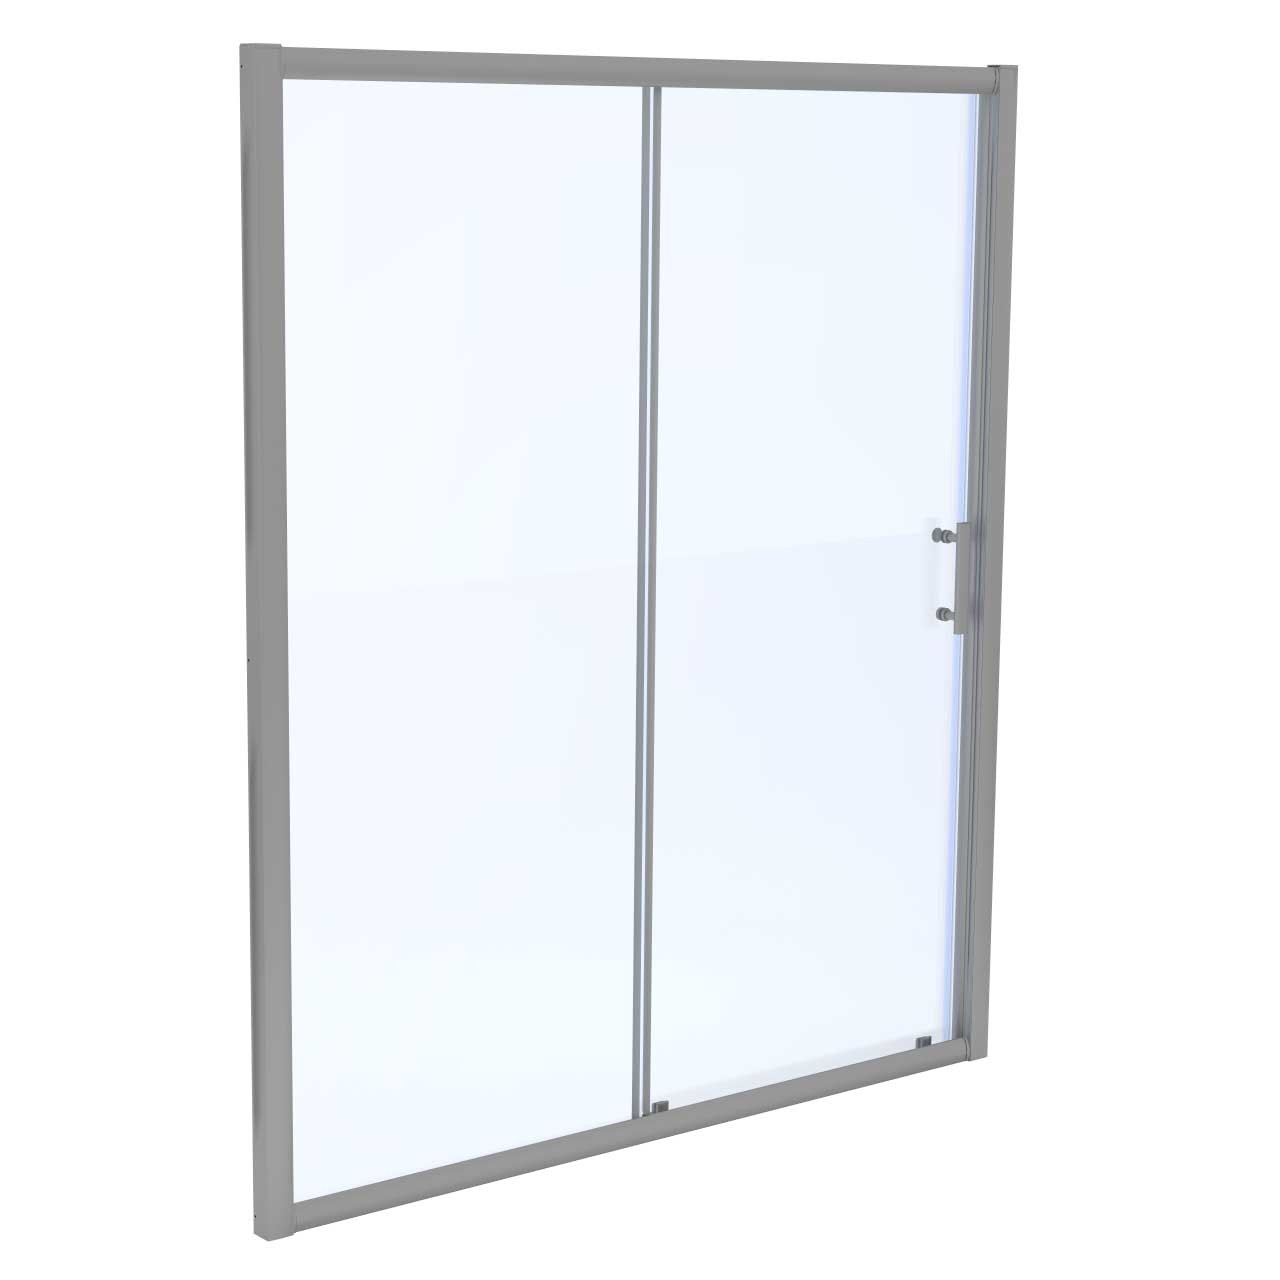 Series 6 1600mm x 760mm Sliding Door Shower Enclosure